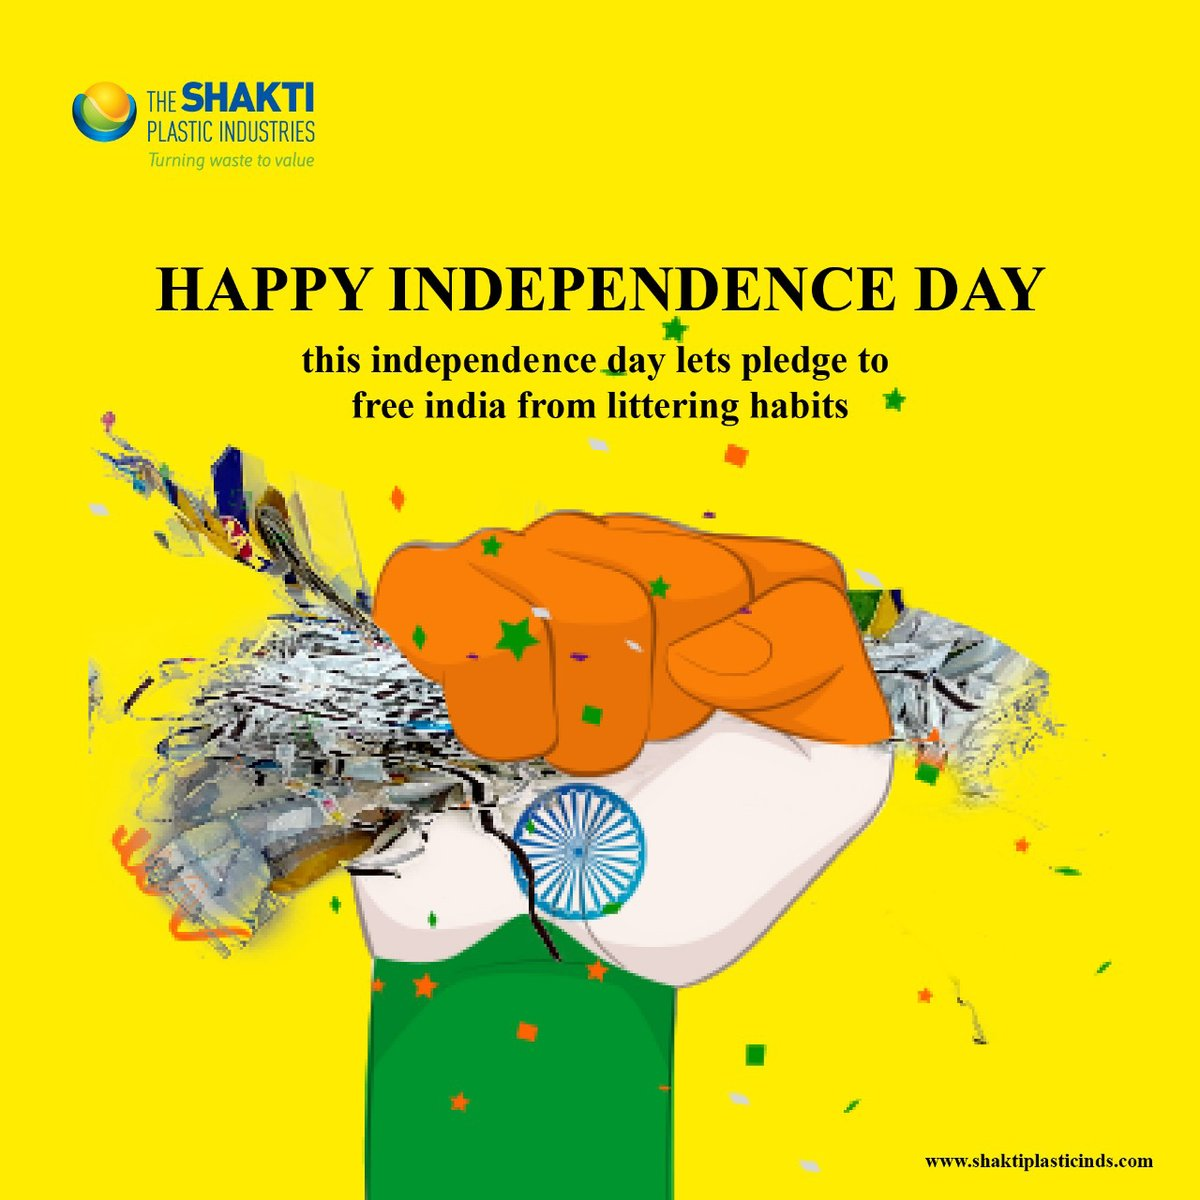 This independence day lets pledge to free india from littering habits,  HAPPY INDEPEDENCE DAY 🇮🇳 https://t.co/9WhDZVqaND